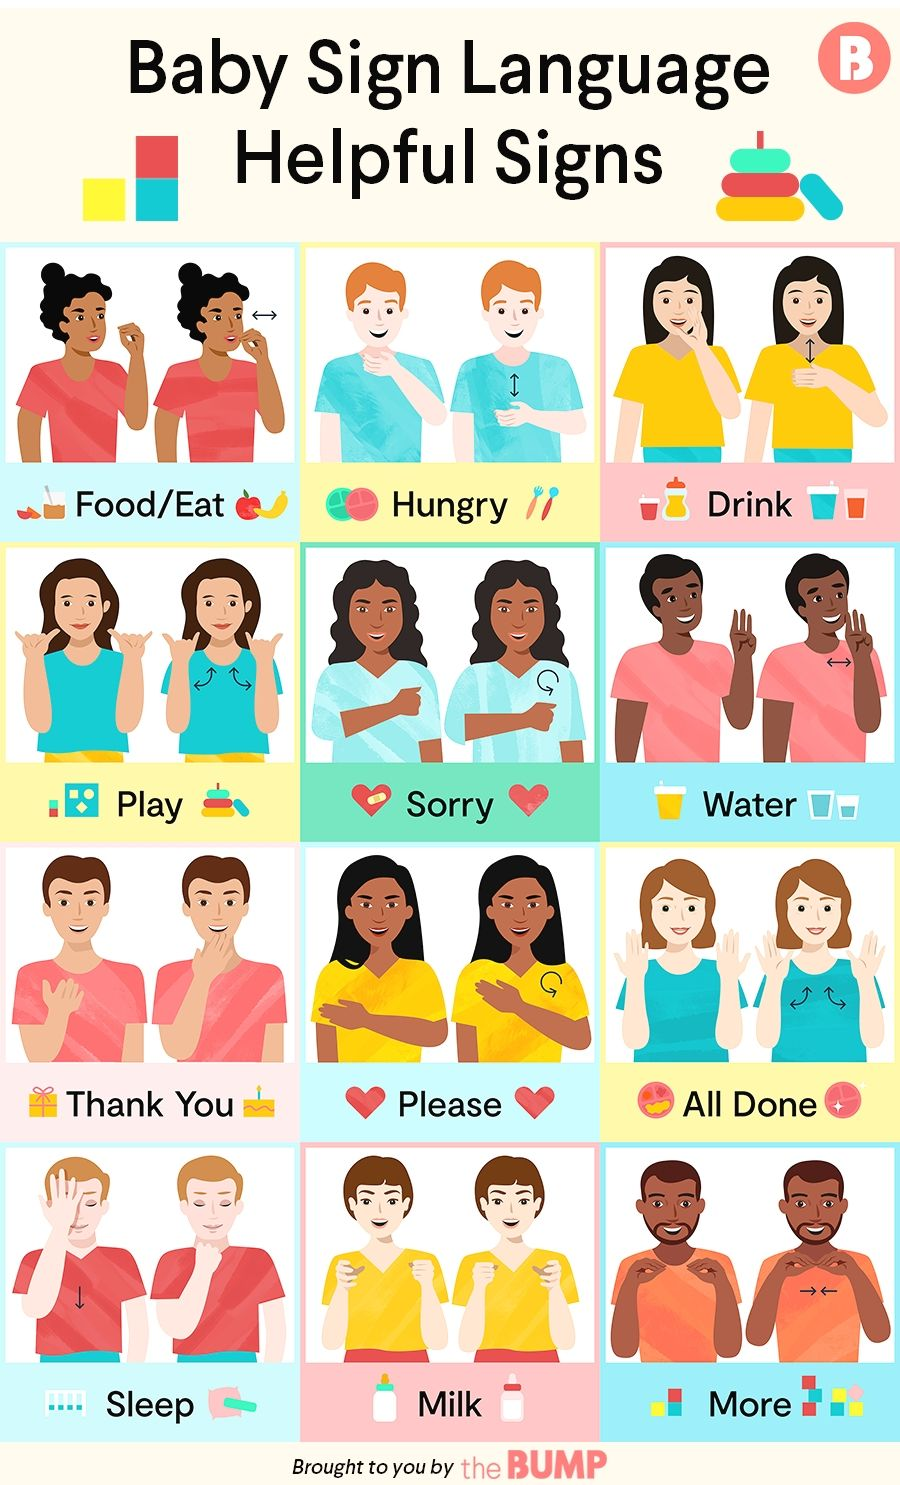 Pin by ptr.finayev on Baby | Baby sign language, Baby sign ...